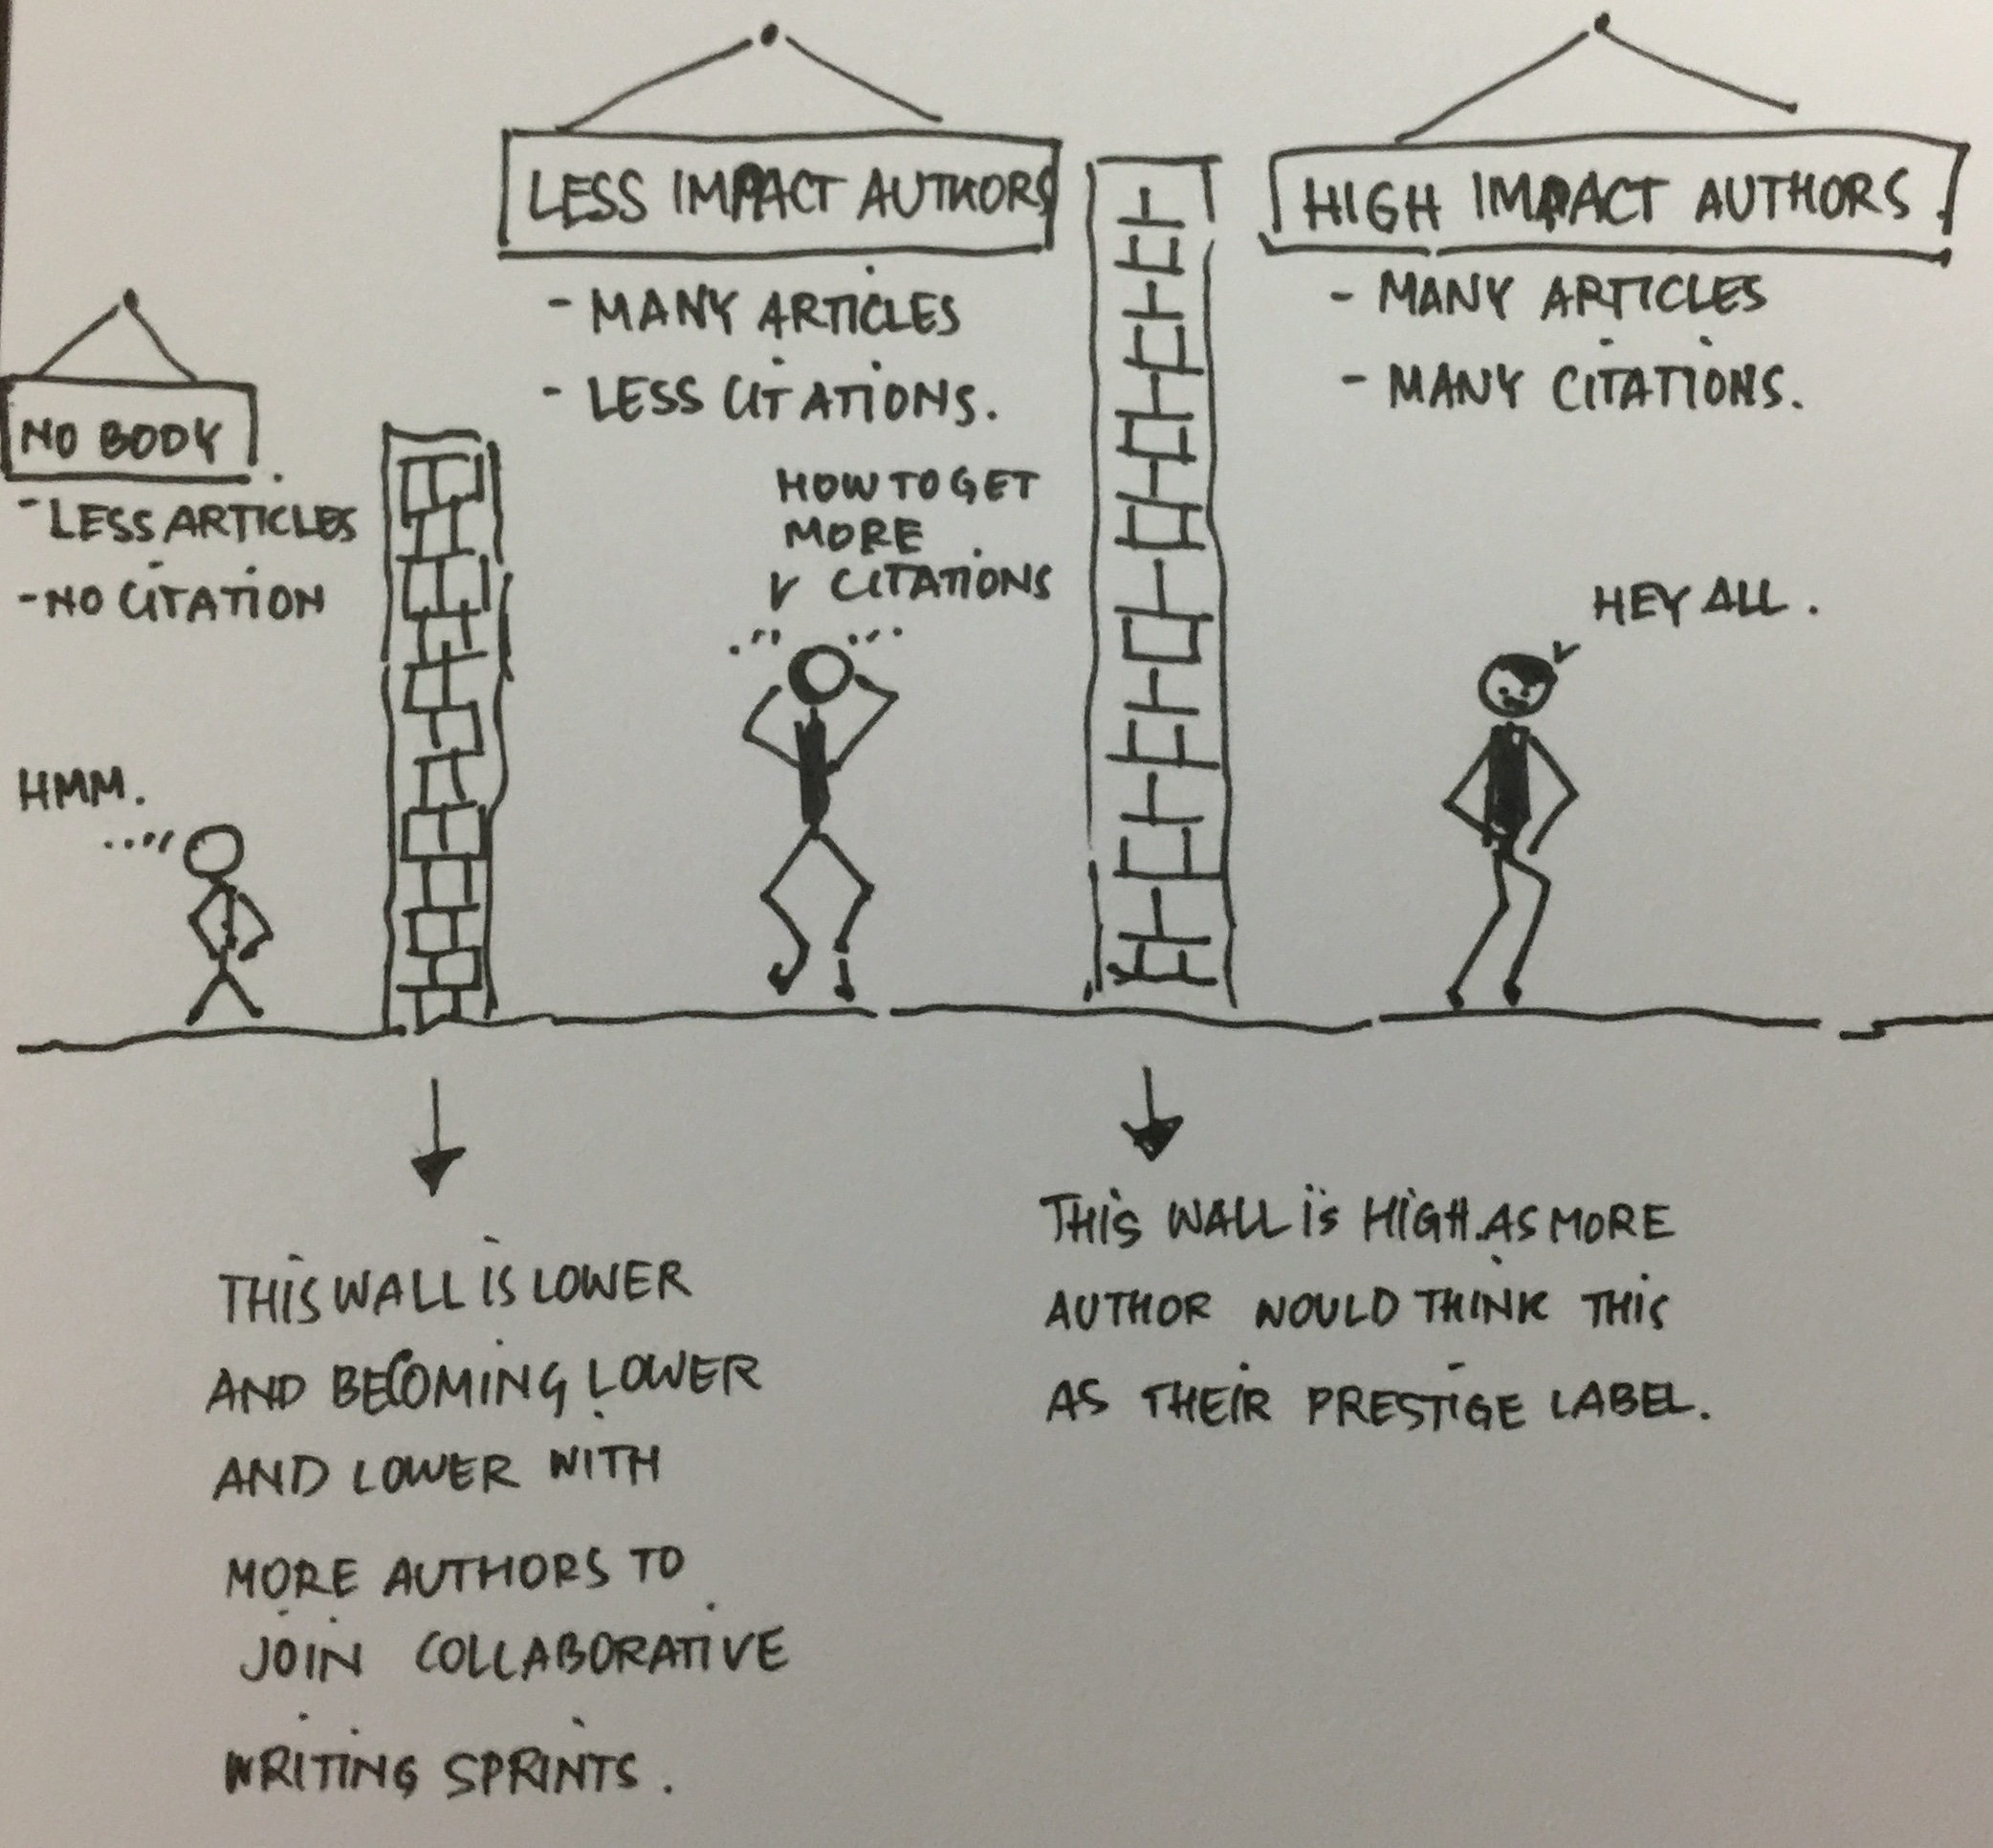 A sketch note how an assessment could create new walls around scientists